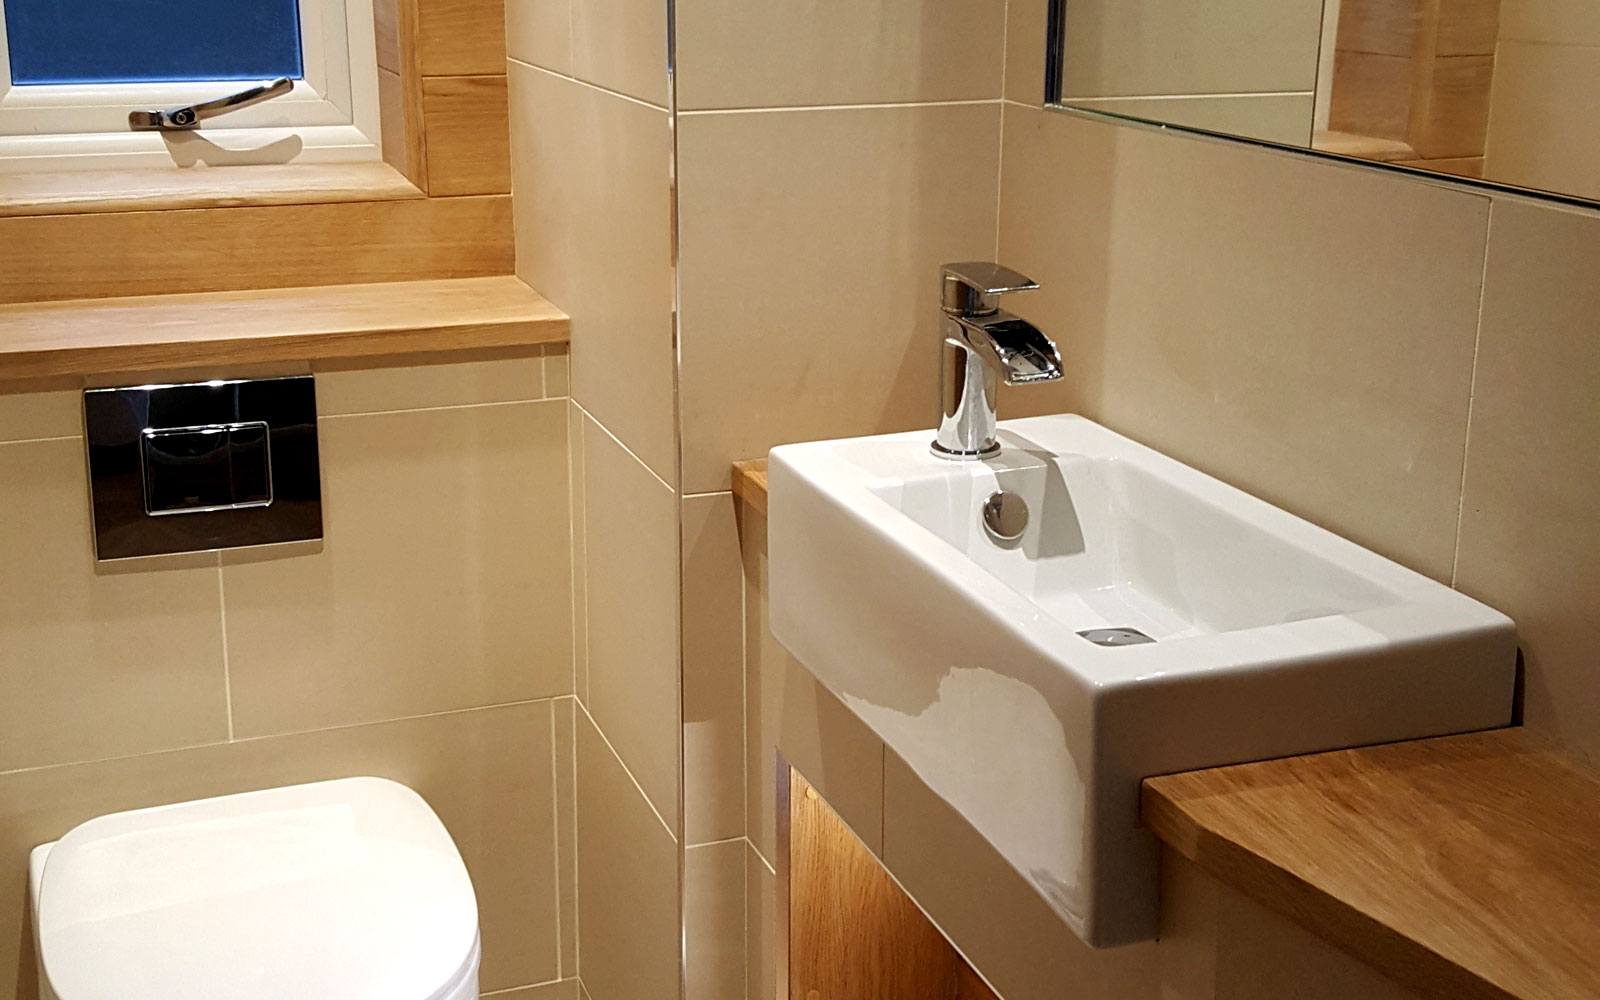 Bathroom installations for architecture and interior design companies, bathroom stores and house owners.